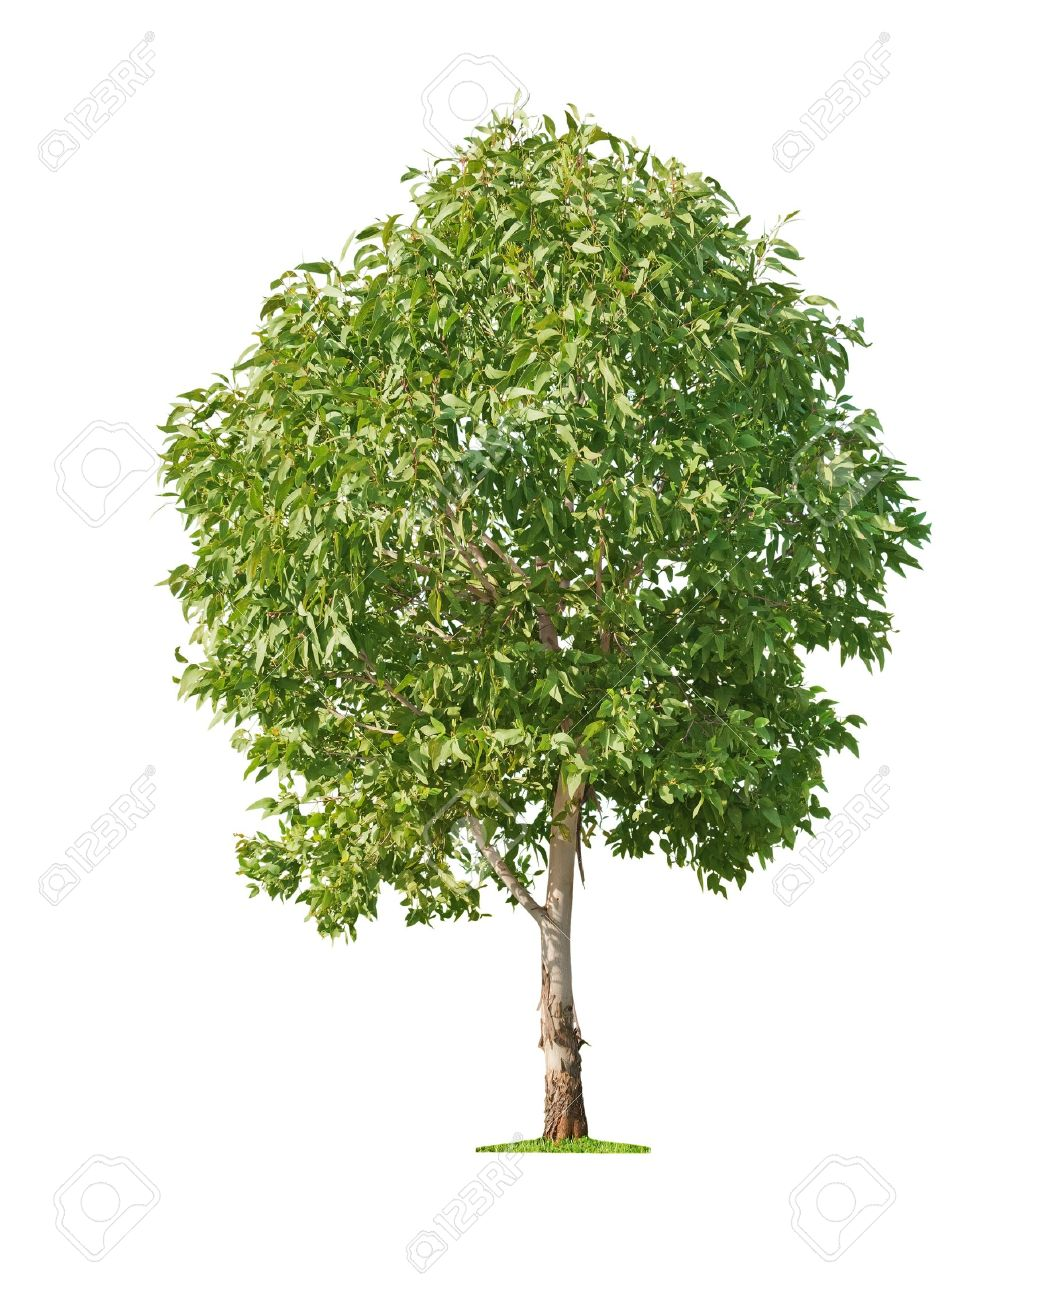 Green beautiful and young eucalyptus tree isolated on white background Stock Photo - 16325700